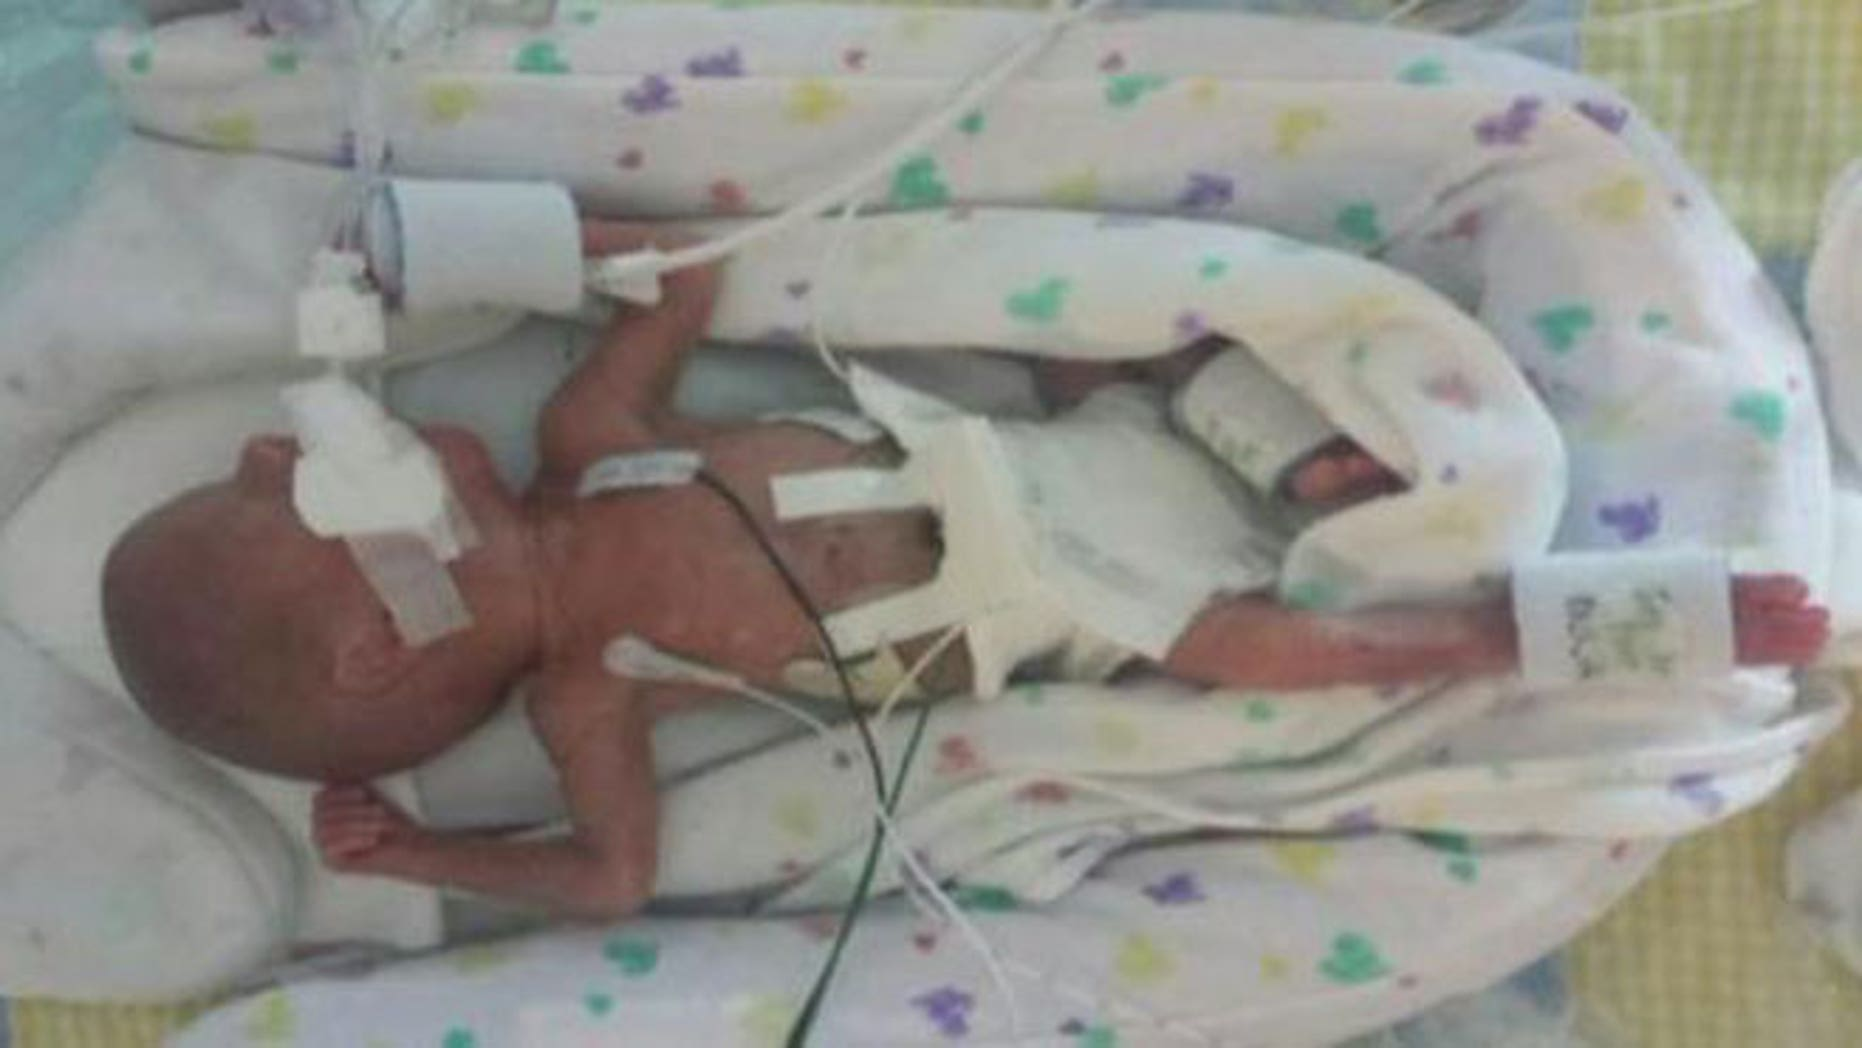 Link Gorveatt, pictured here, was born extremely premature at 23 weeks old on Tuesday, Sept. 29. He and his twin brother, Logan, suffered from twin-to-twin transfusion syndrome, a condition marked by a shared placenta in utero.